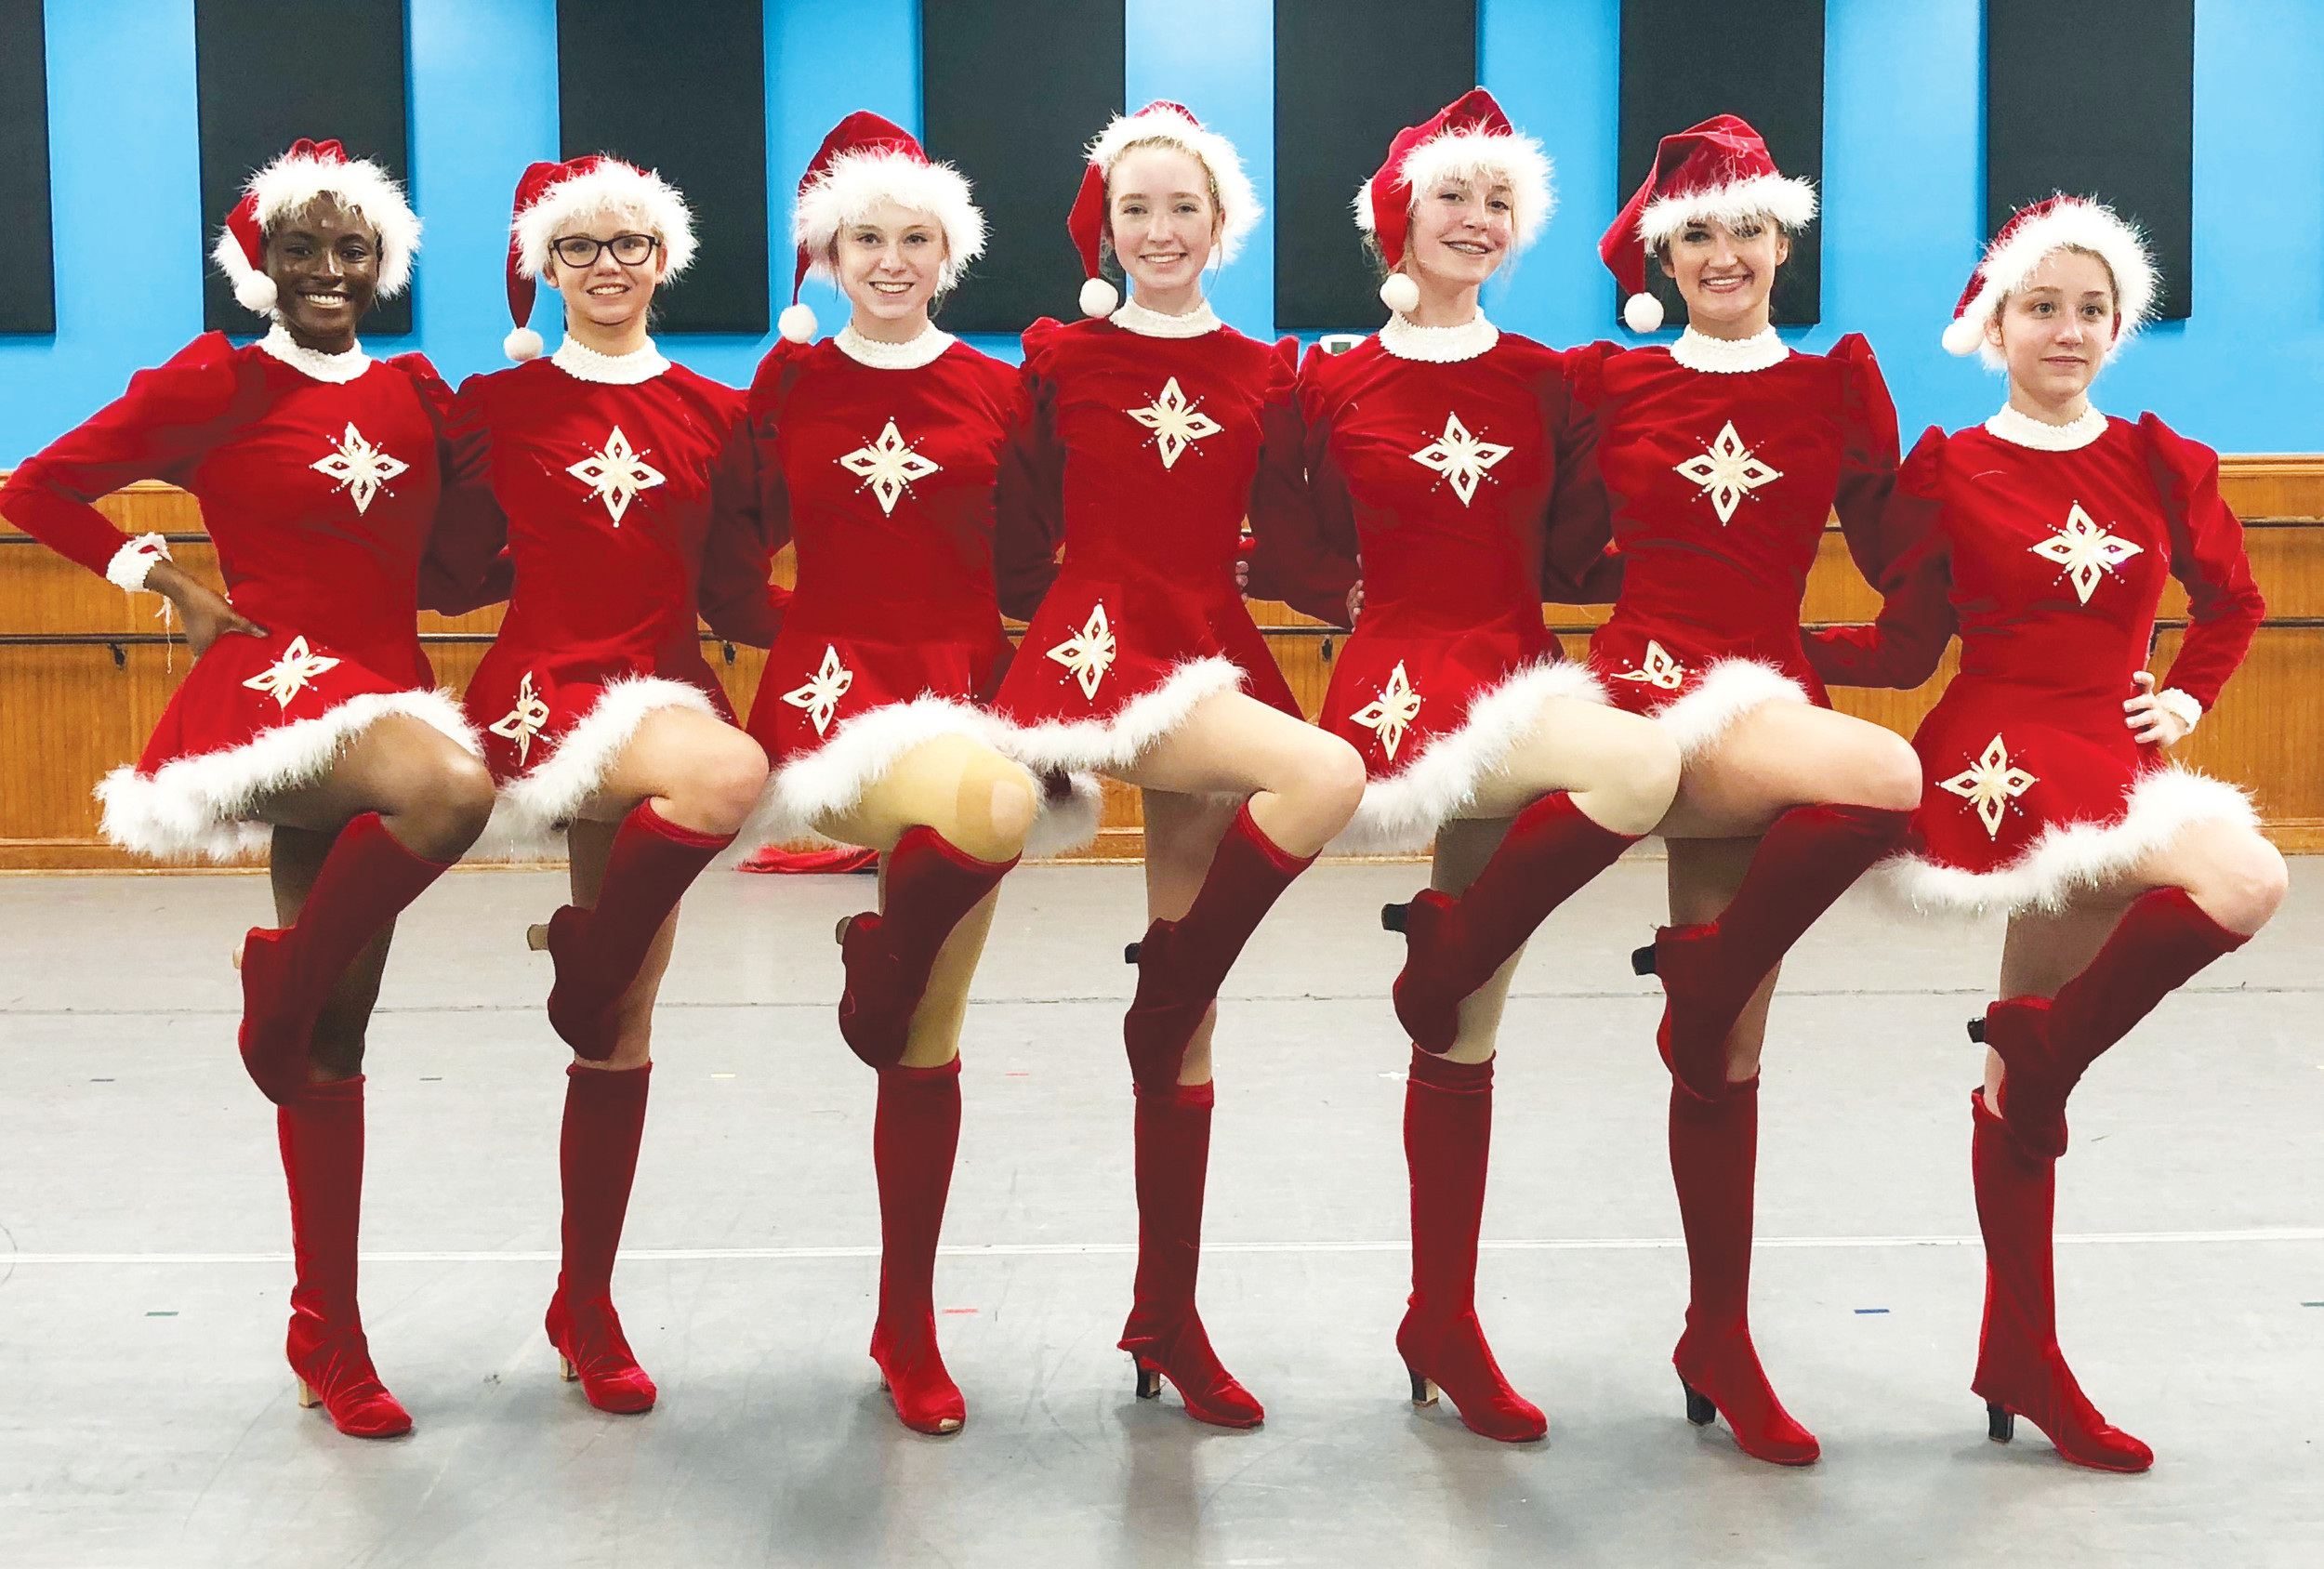 The Sumter Civic Dance Company will present its 23rd-Annual Jingle with the Arts on Friday and Saturday, Dec. 15 and 16, at Patriot Hall.  The Company will perform a kick line in tribute to The Radio City Music Hall Rockettes. Jingle with the Arts, now in its 23rd year, was inspired by the Rockettes' Christmas Spectacular when artistic director and primary choreographer Andrea Freed-Levenson saw the show almost a quarter century ago.